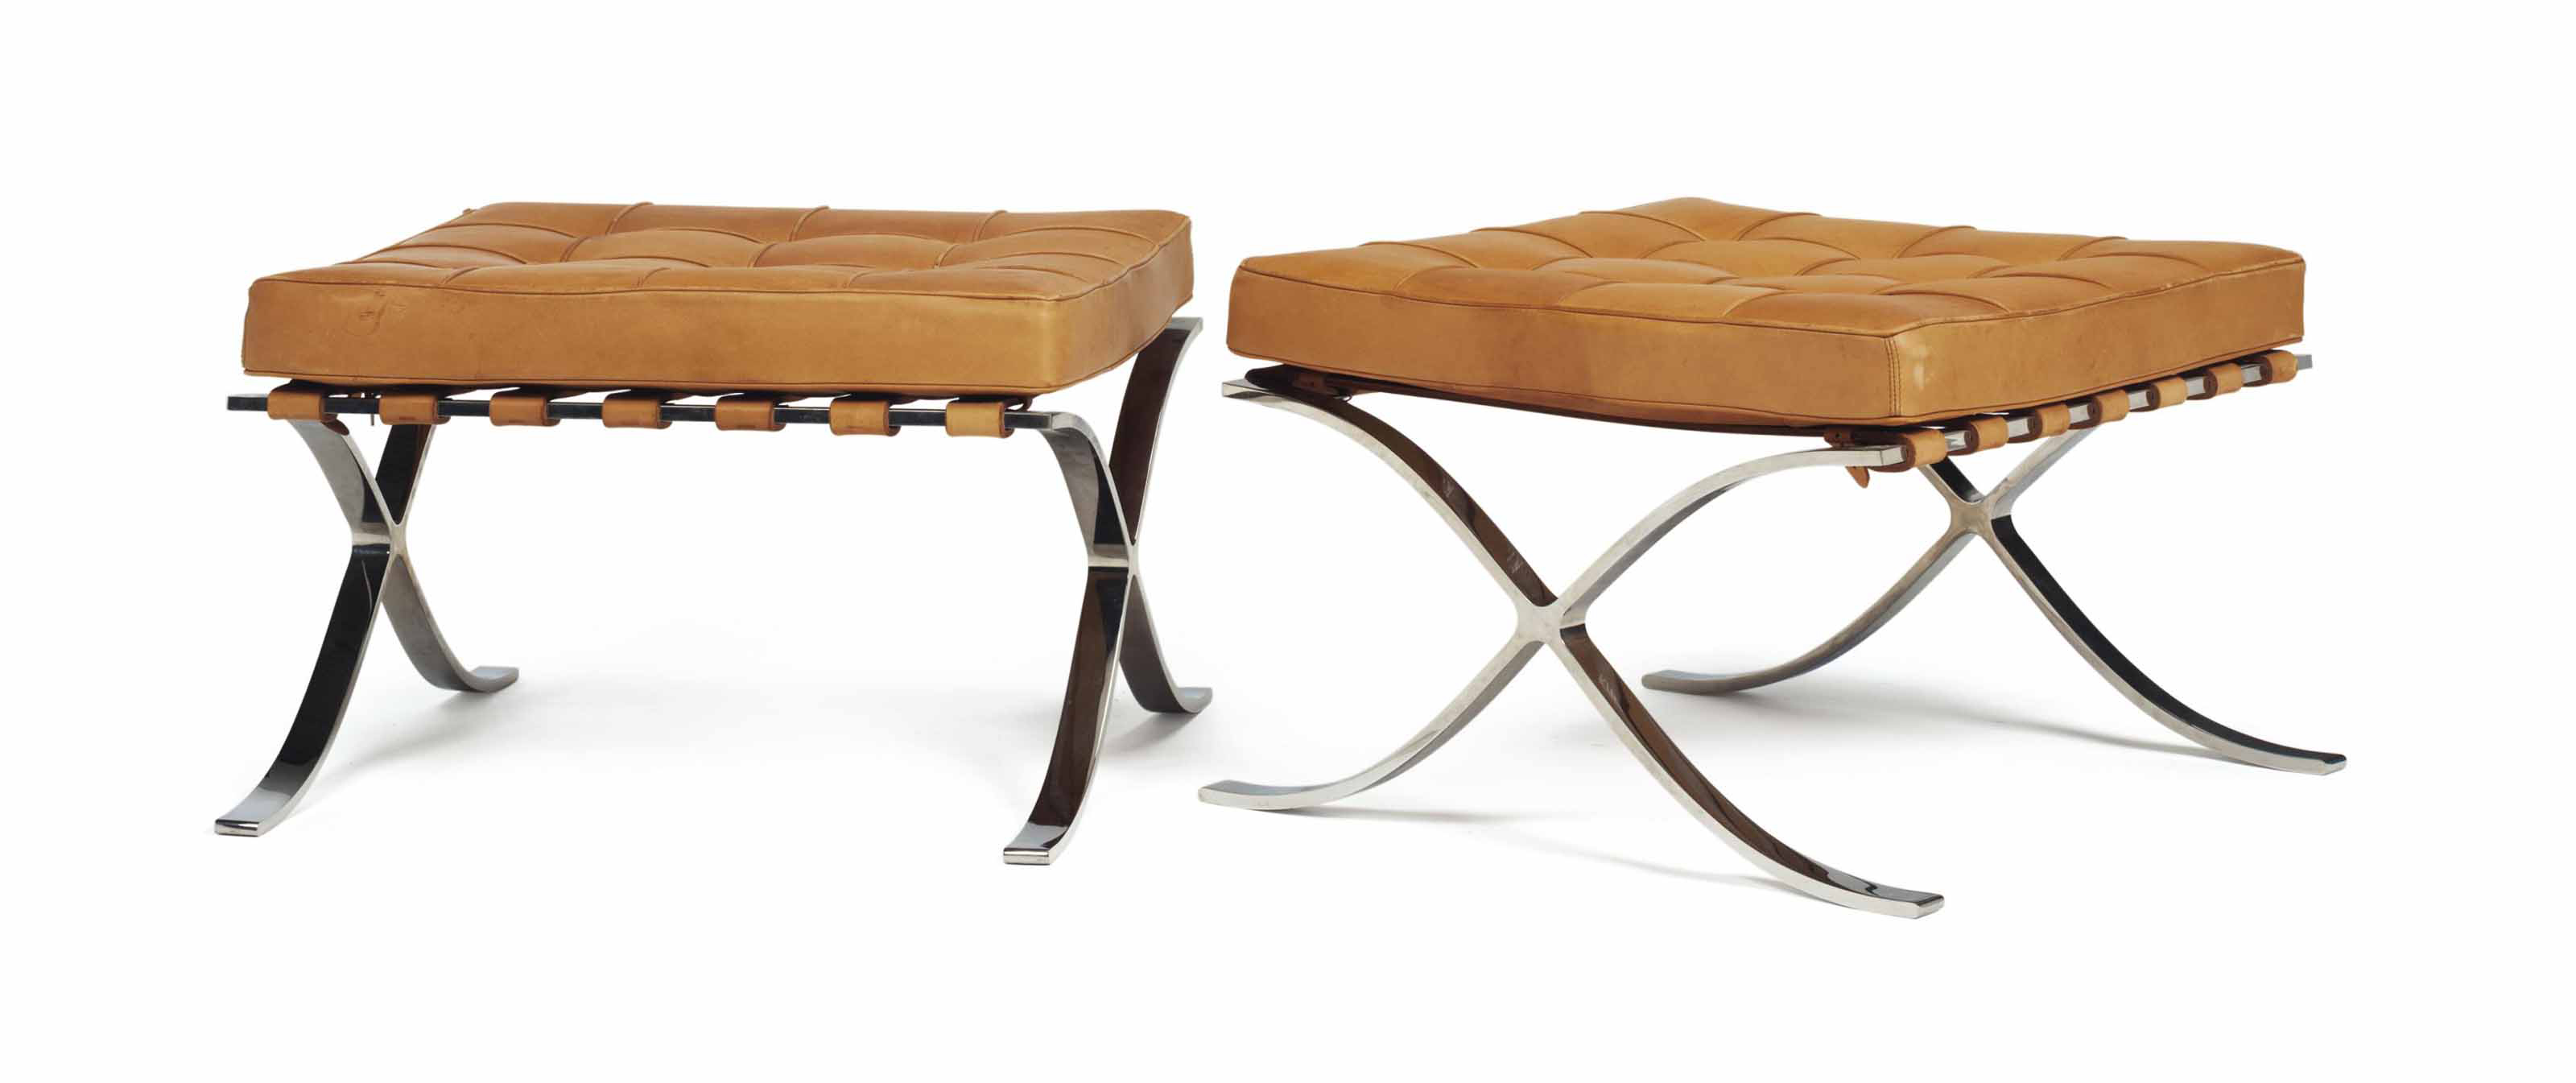 A PAIR OF STAINLESS STEEL AND TAN LEATHER 'BARCELONA' STOOLS